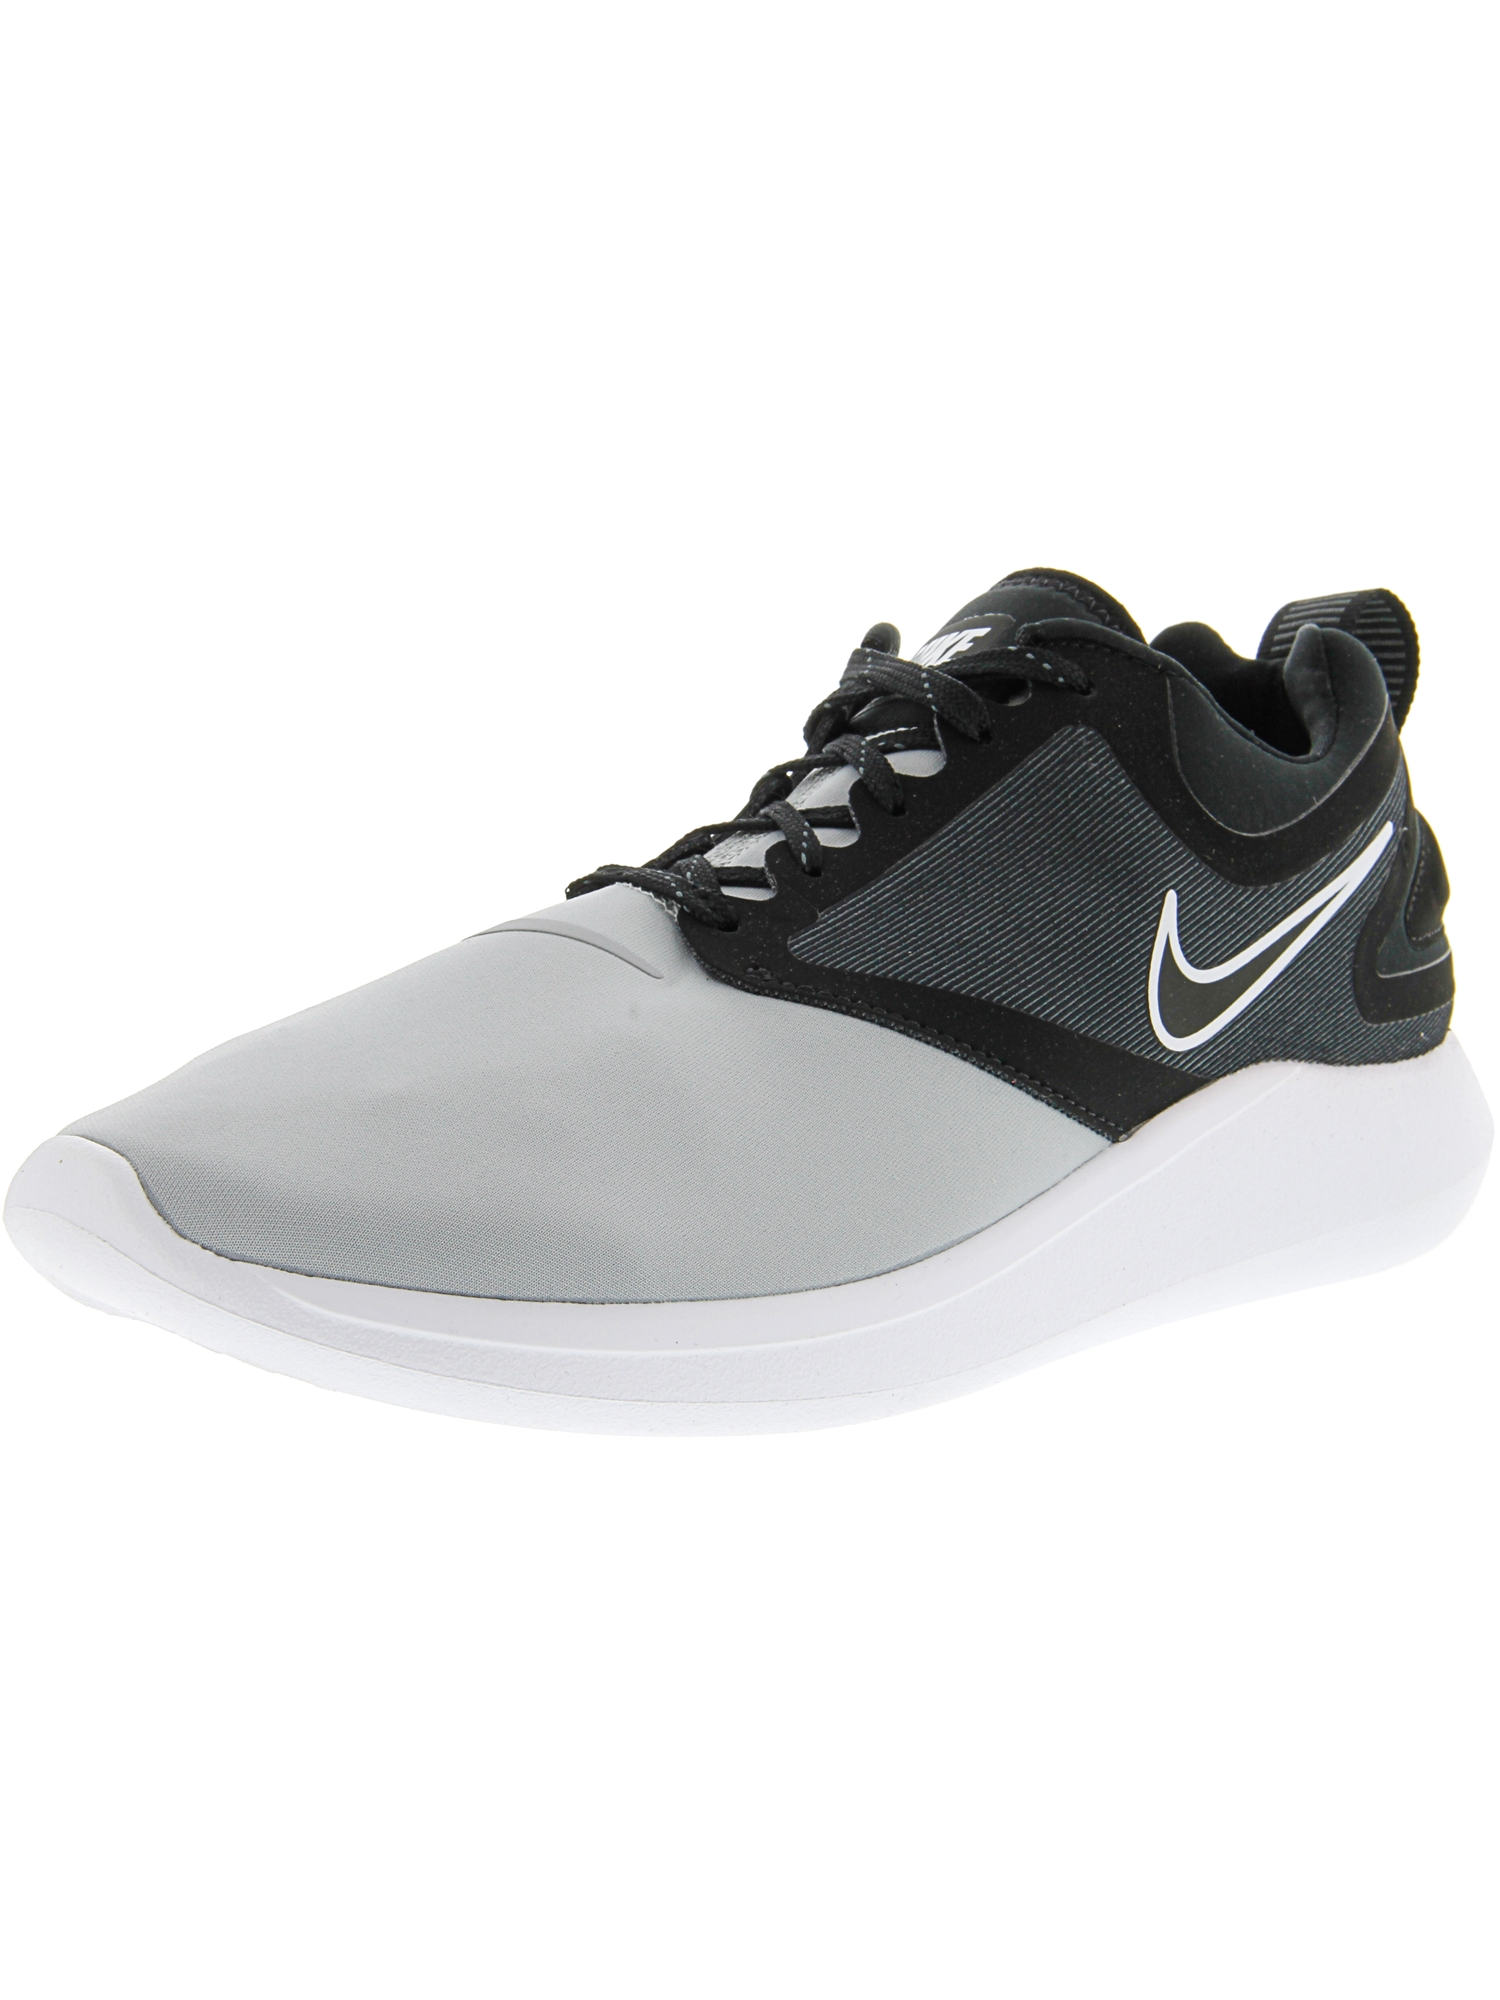 the best attitude aaedc e6625 Nike - Nike Men s Lunarsolo Wolf Grey   Black - Dark Ankle-High Running Shoe  11M - Walmart.com